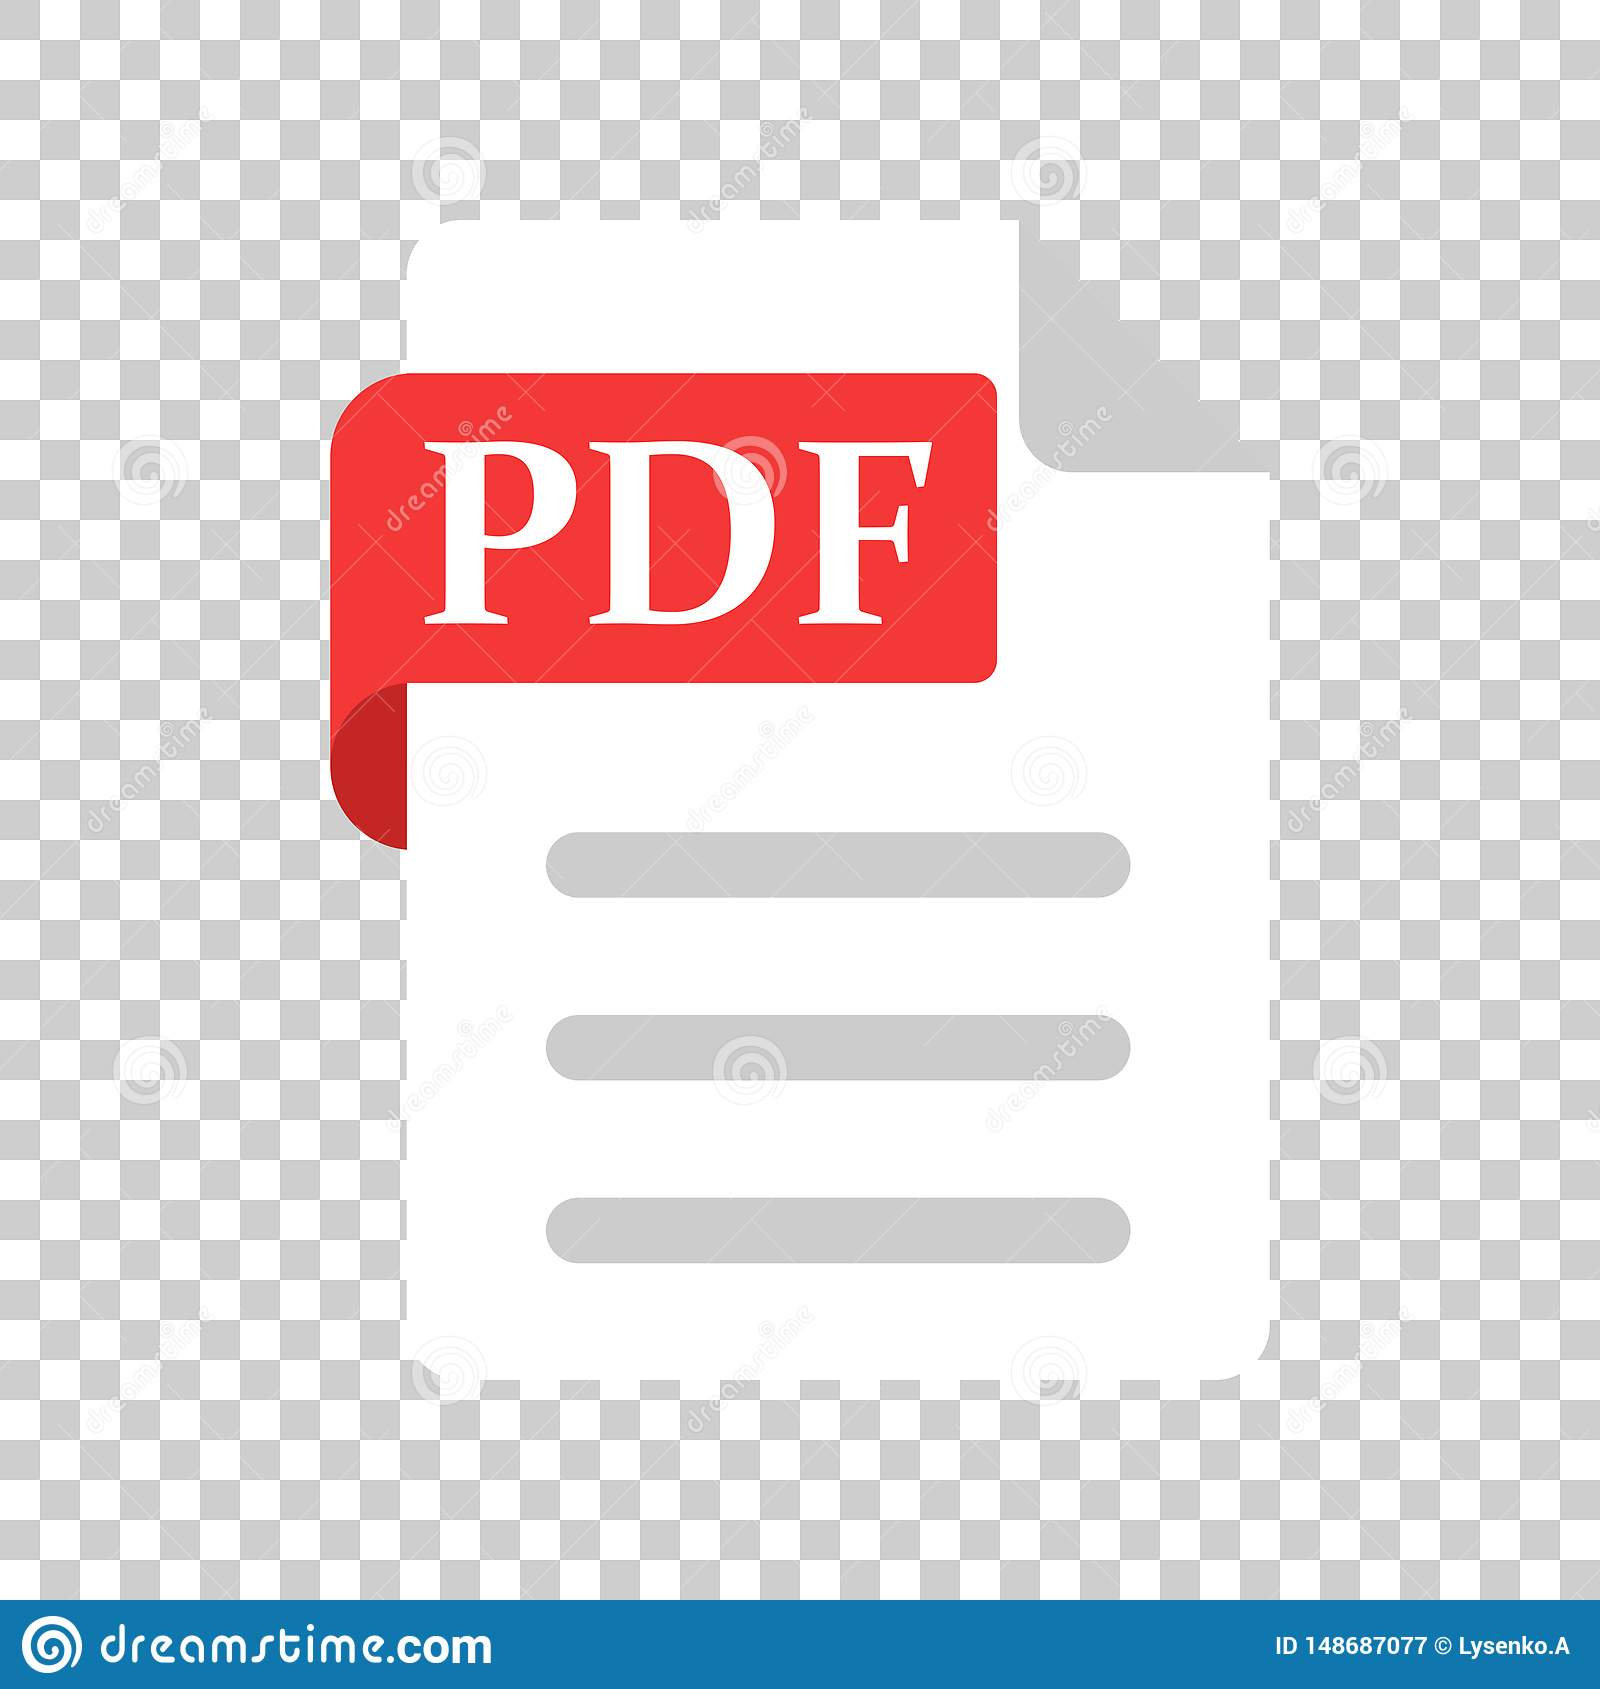 Pdf Icon In Transparent Style Document Text Vector Illustration